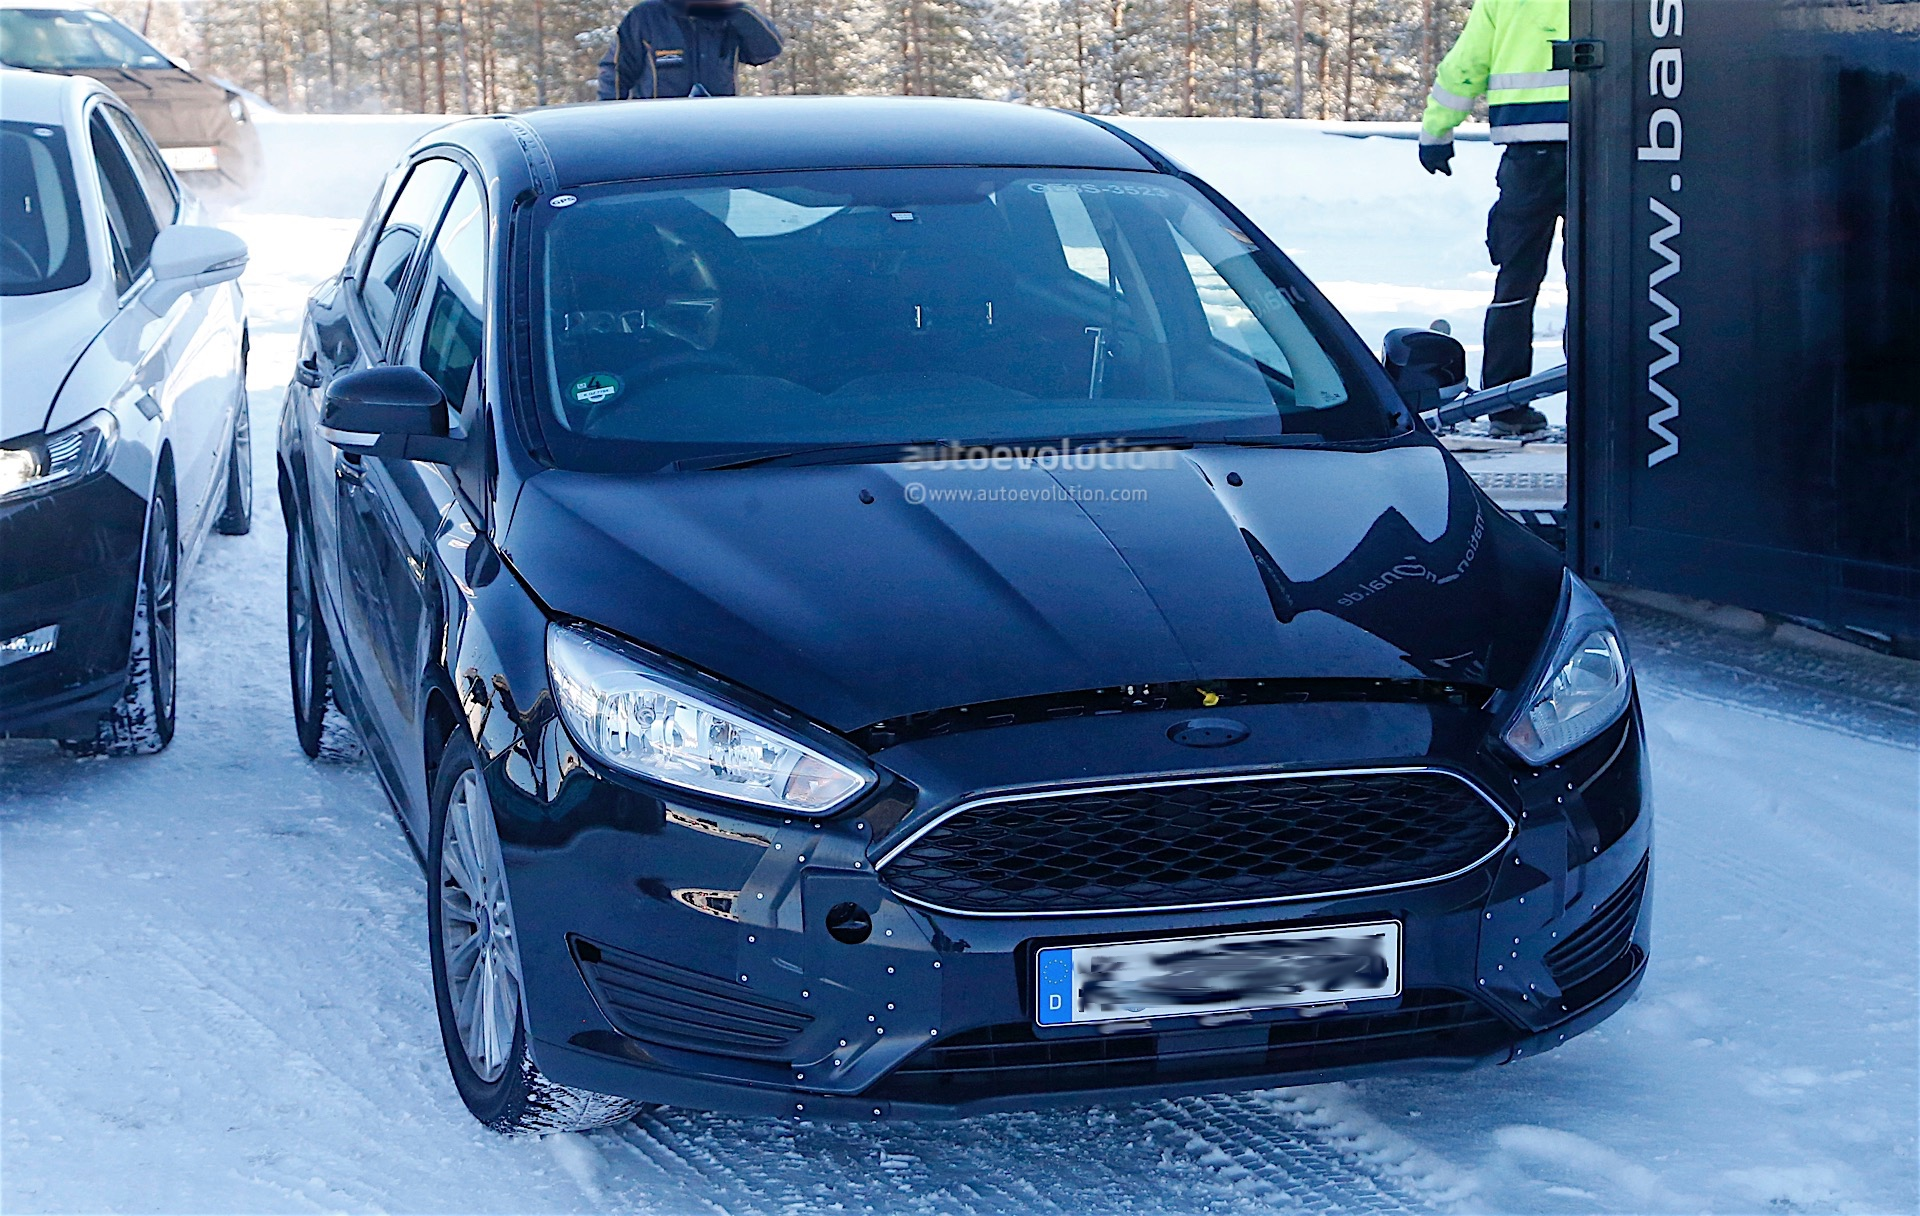 Ford Testing Next-Generation Focus in Winter Conditions ...